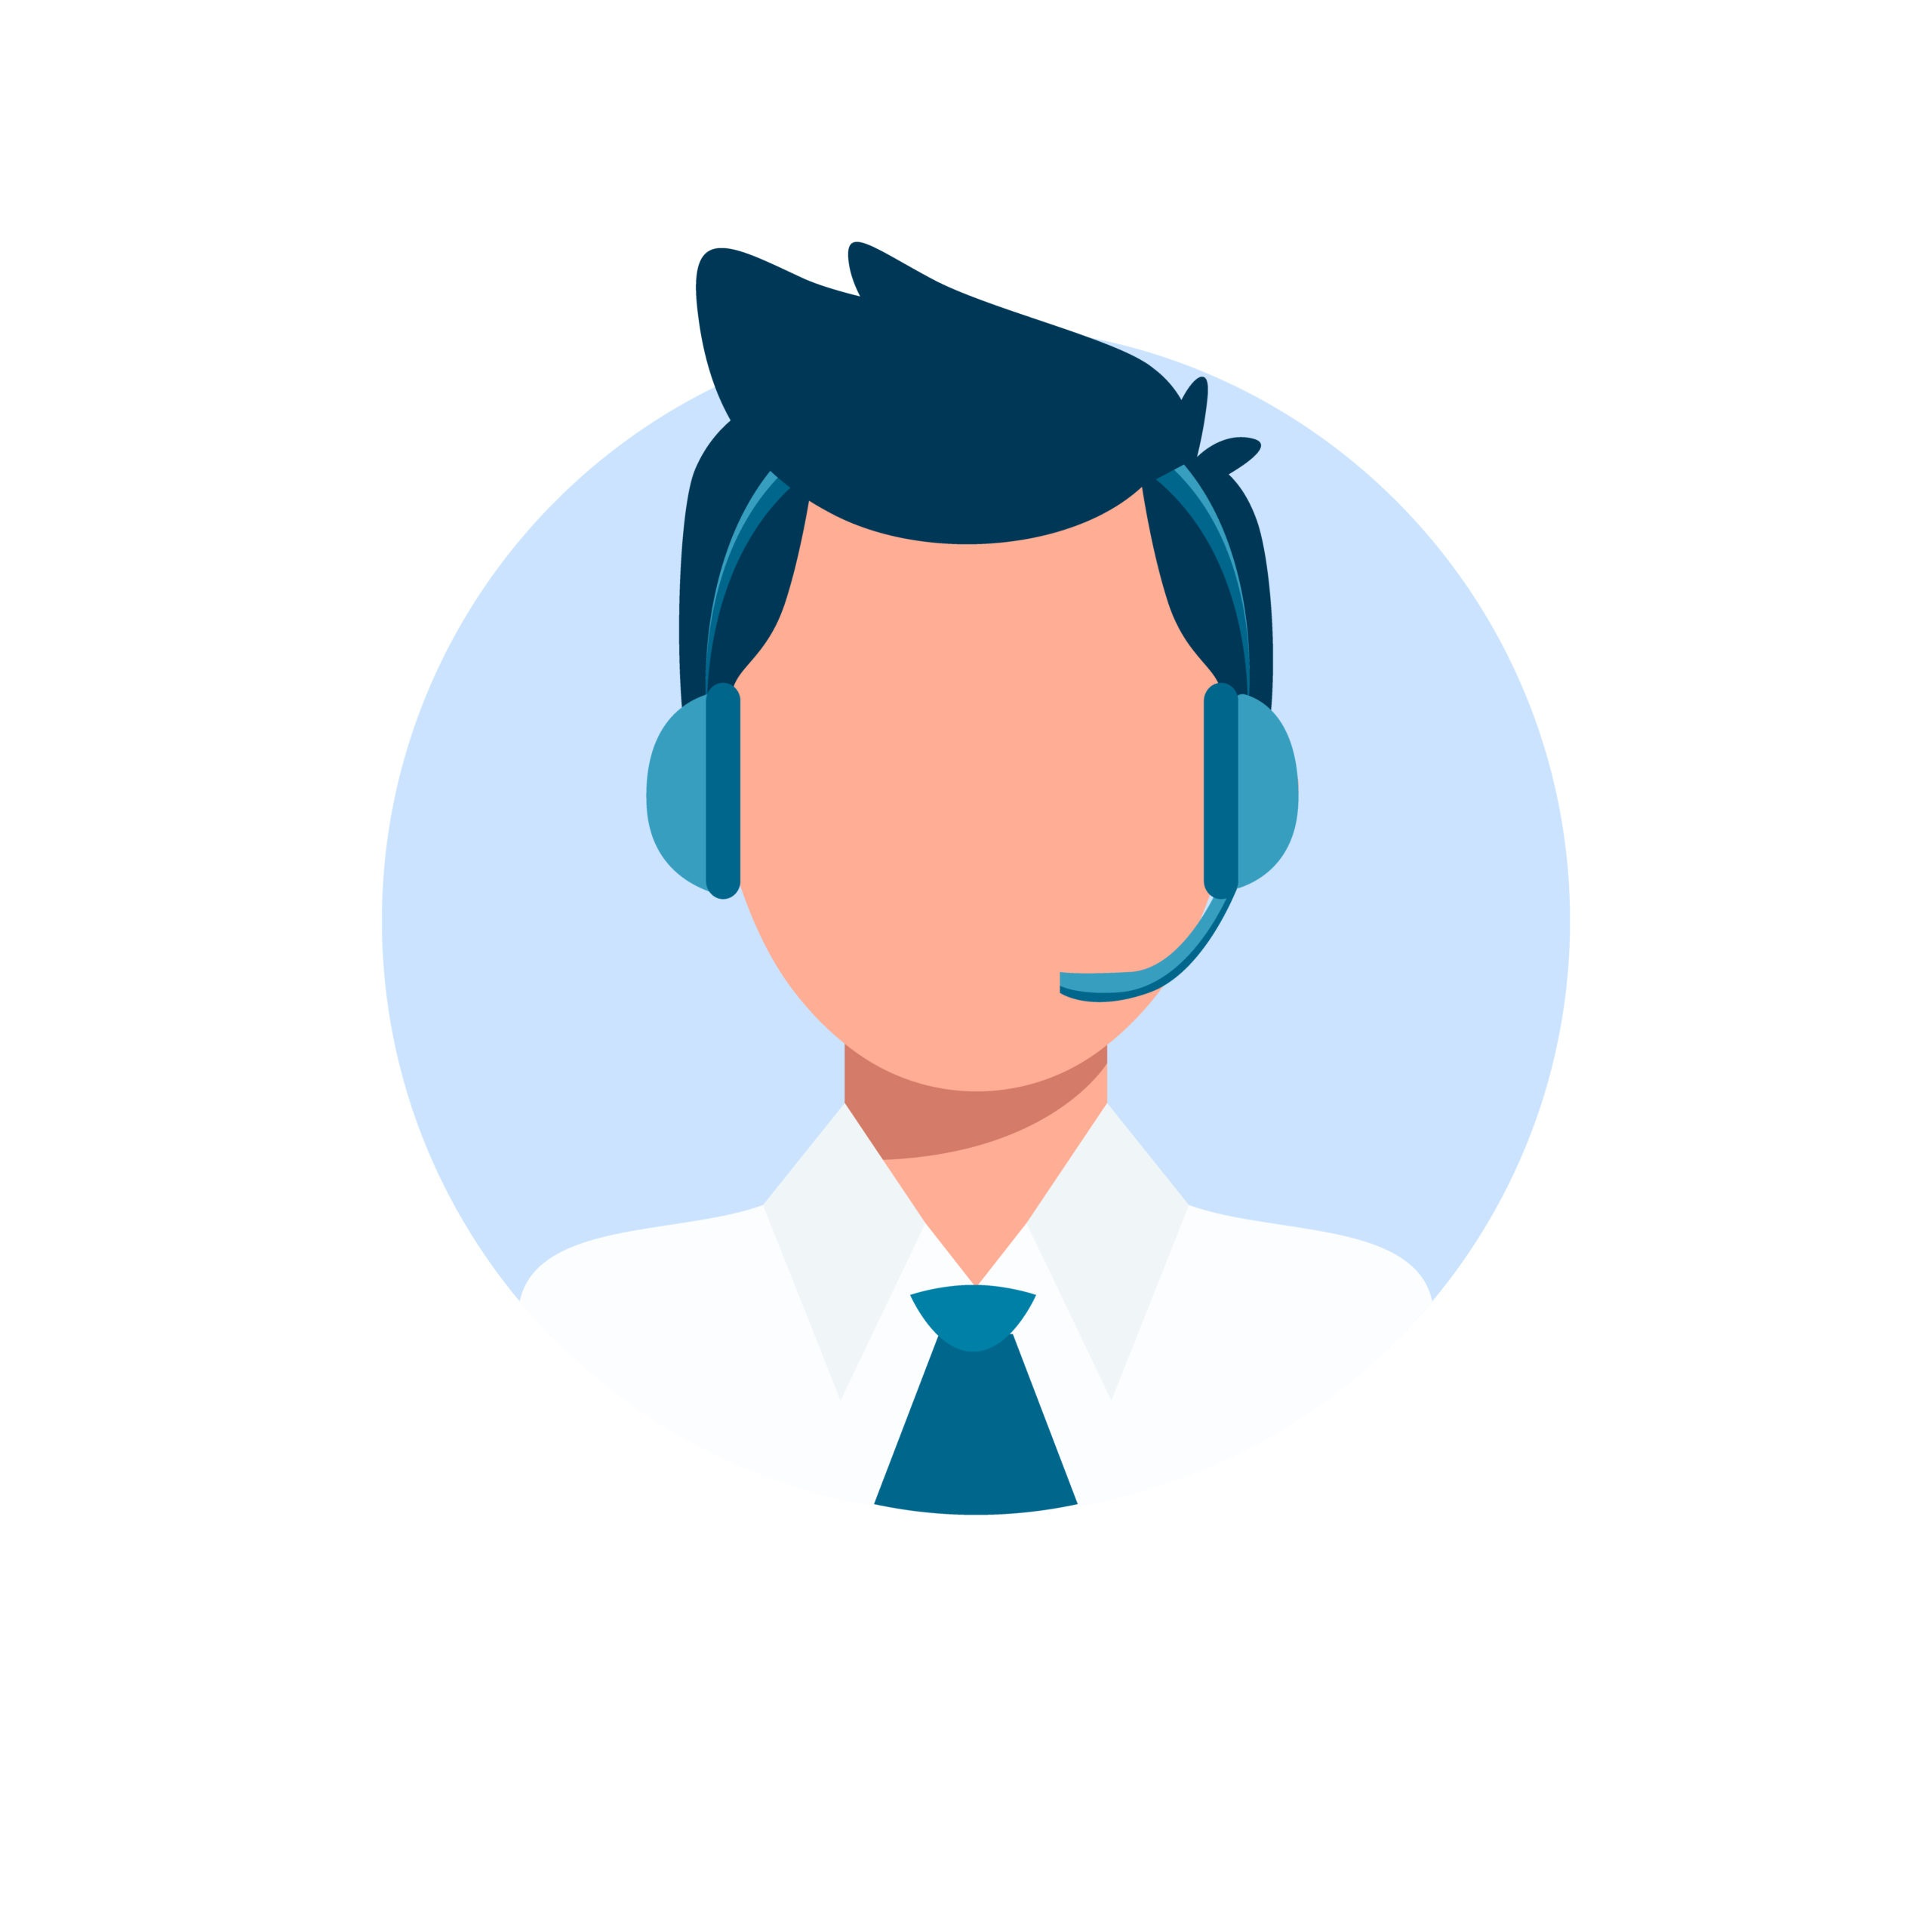 Man wearing headsets conceptual of client services and communication.